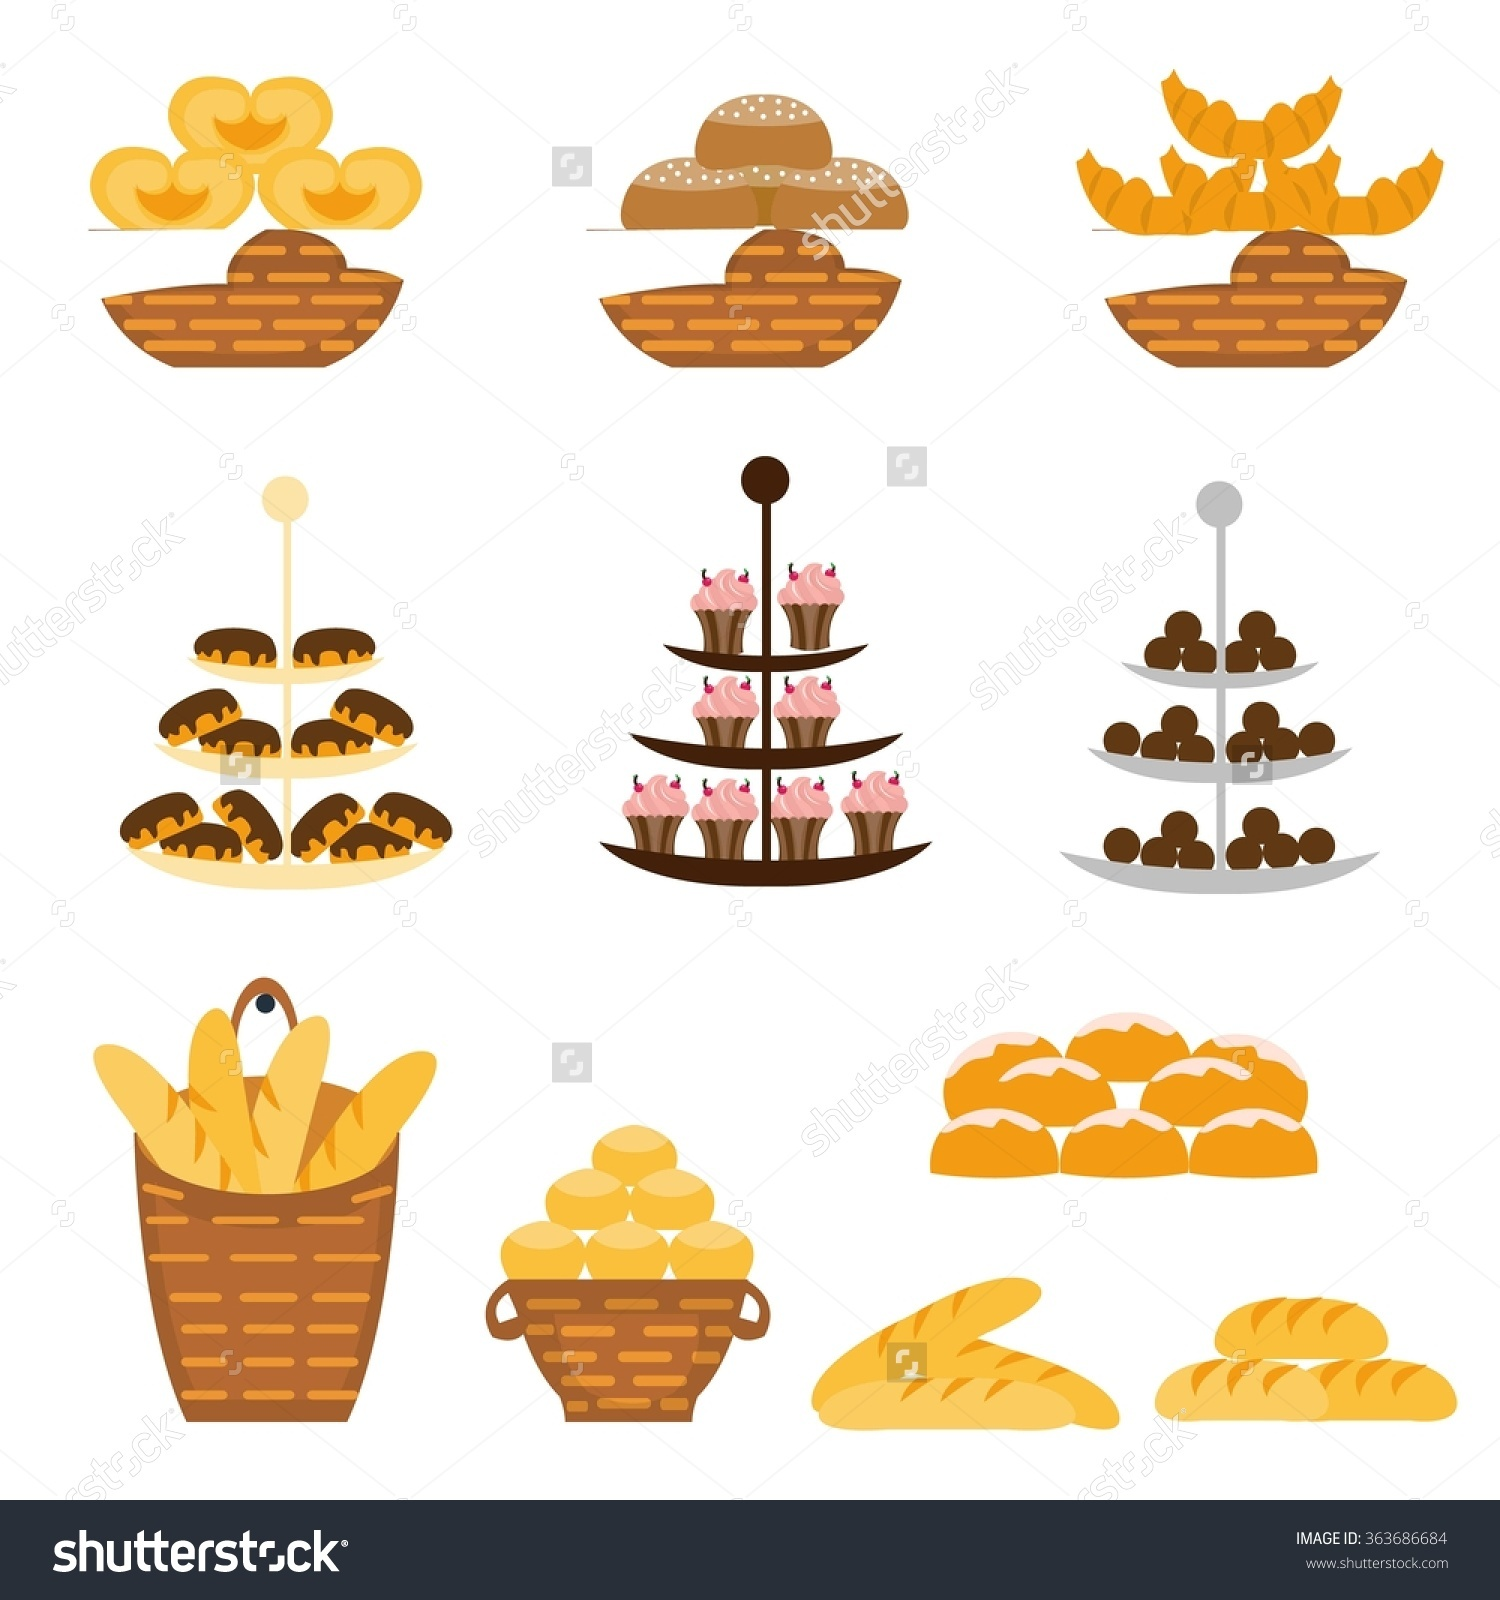 Set Different Types Bakery Products Vector Stock Vector 363686684.